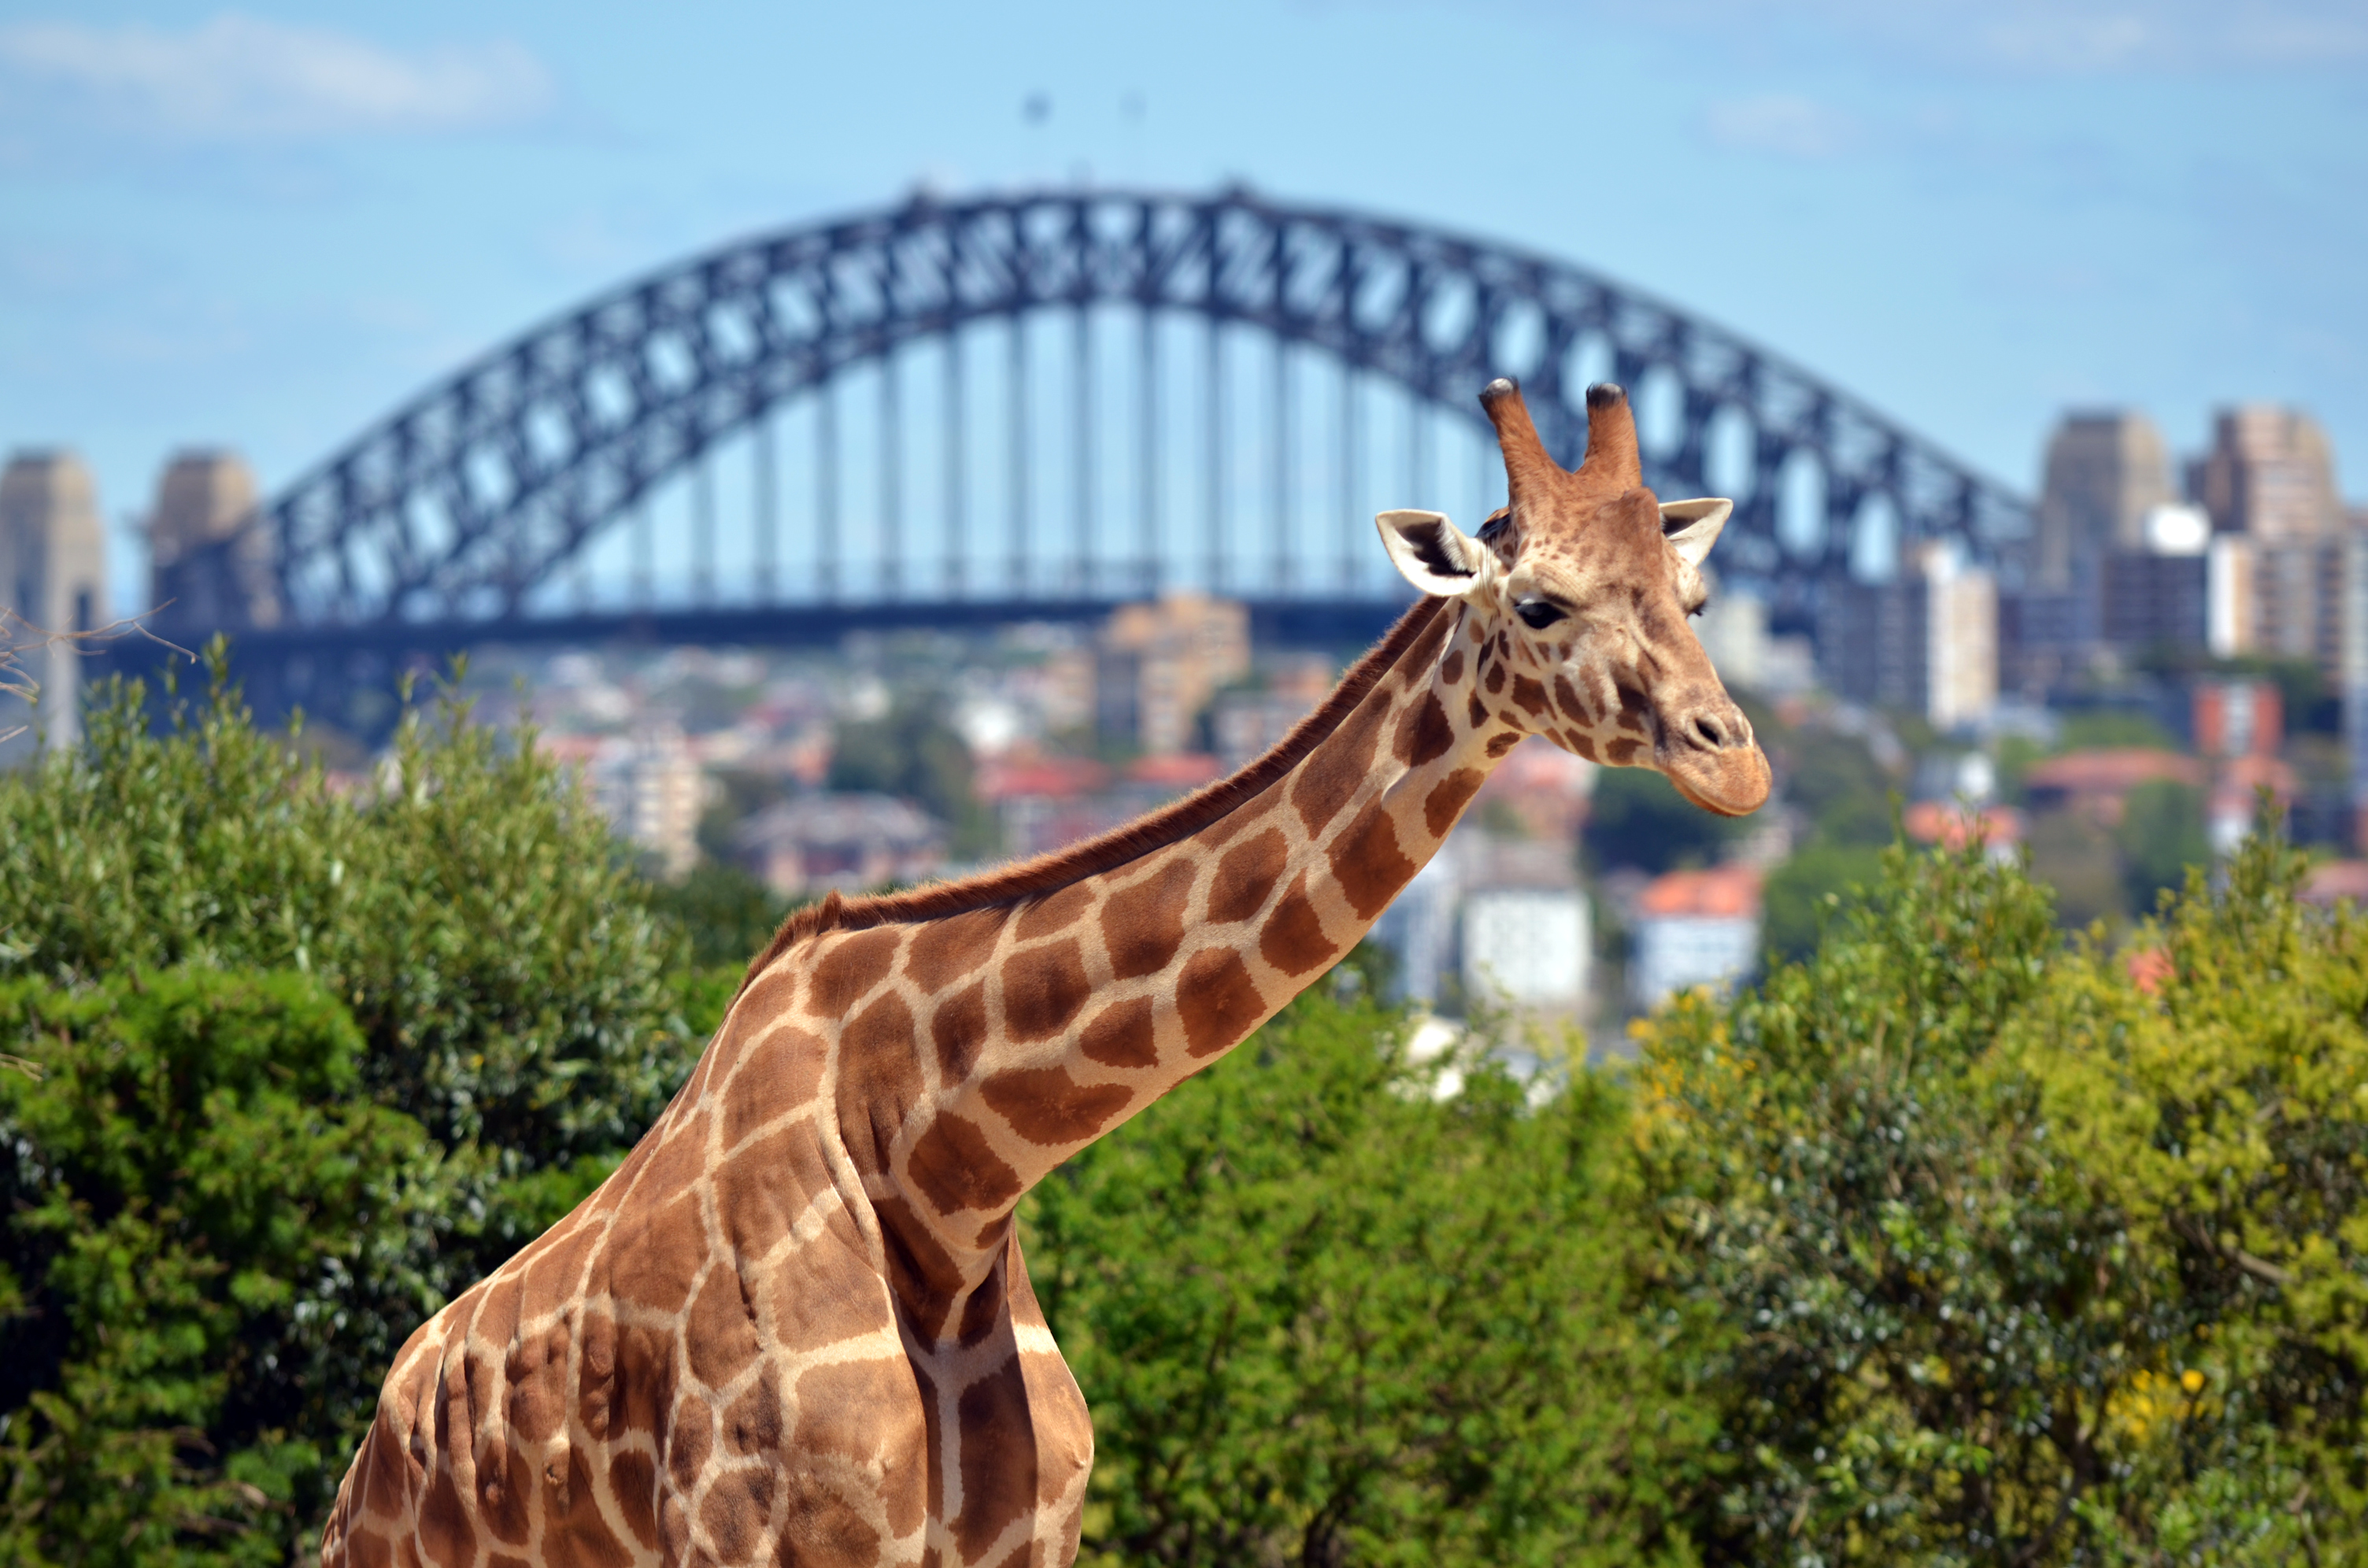 Taronga Zoo Sydney New South Wales Australia